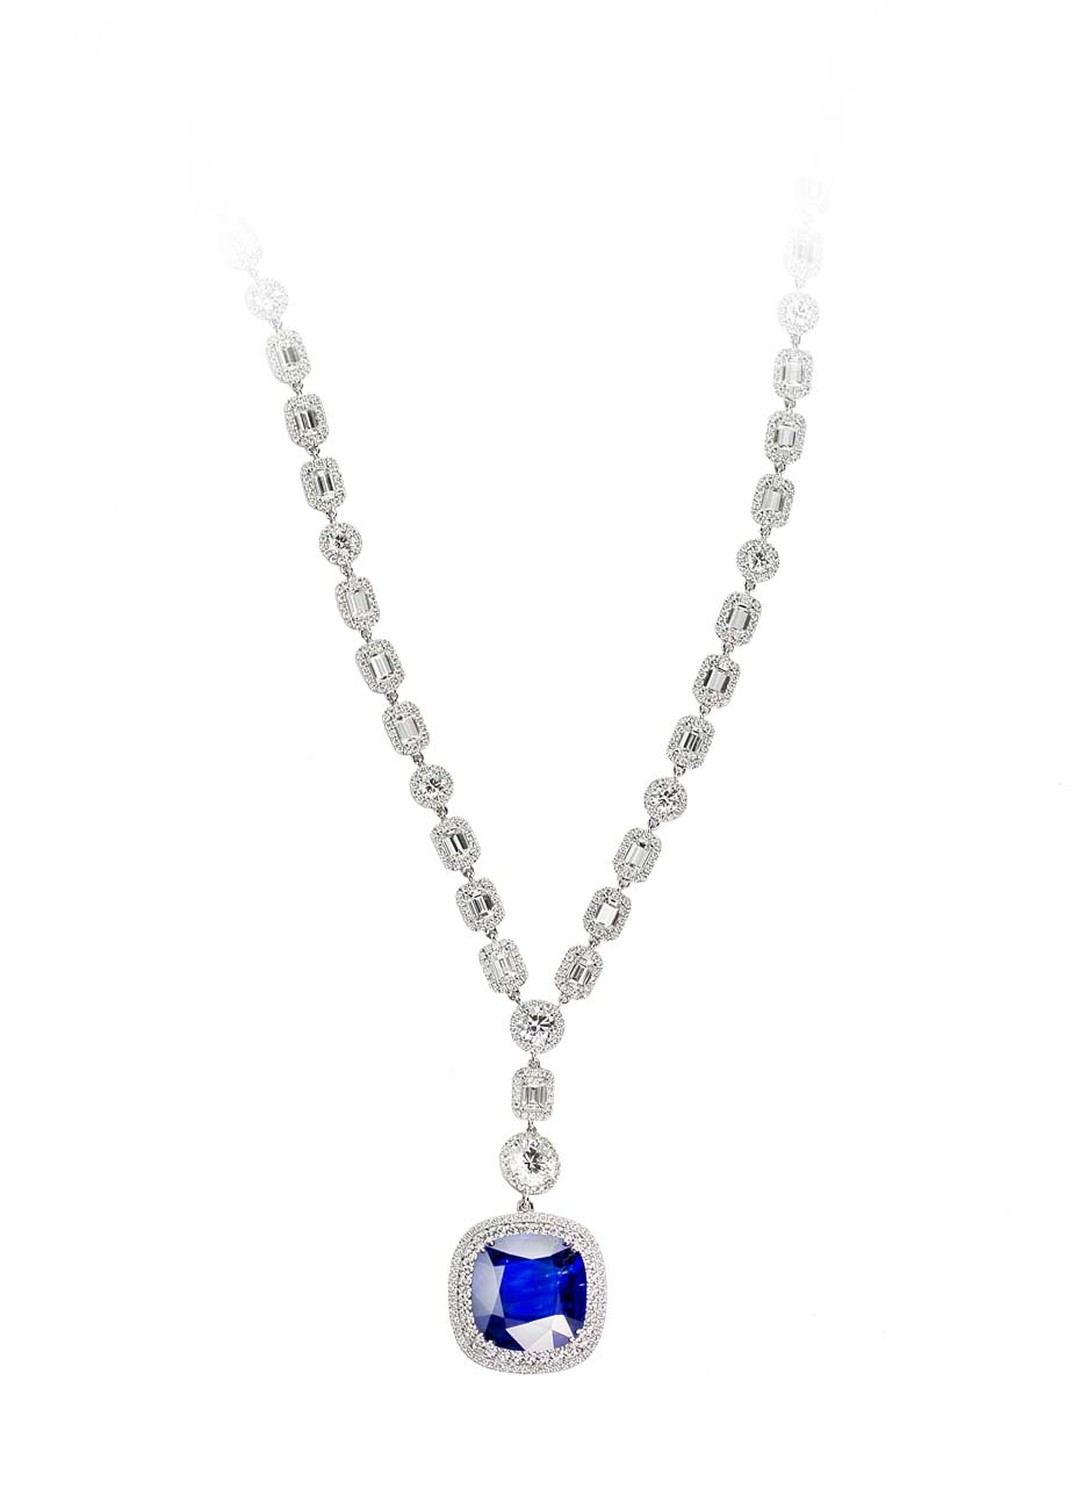 The necklace worn by BAFTAs 2014 presenter Gillian Anderson were set with a centre solitaire and 18ct diamonds.